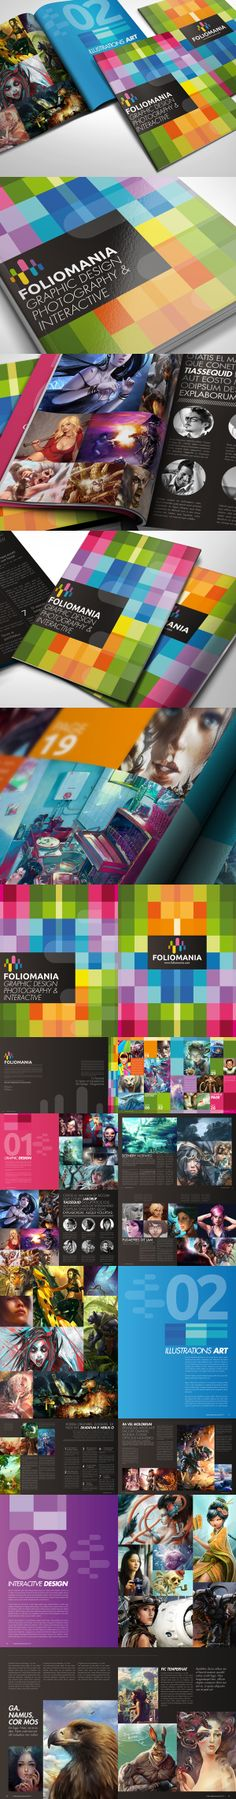 Foliomania is a portfolio brochure designed for designers. I chose a series of vibrant colors as an approach which symbolise my style of design. Web Design, Book Design, Cover Design, Layout Design, Creative Design, Print Design, Brochure Layout, Brochure Design, Editorial Layout